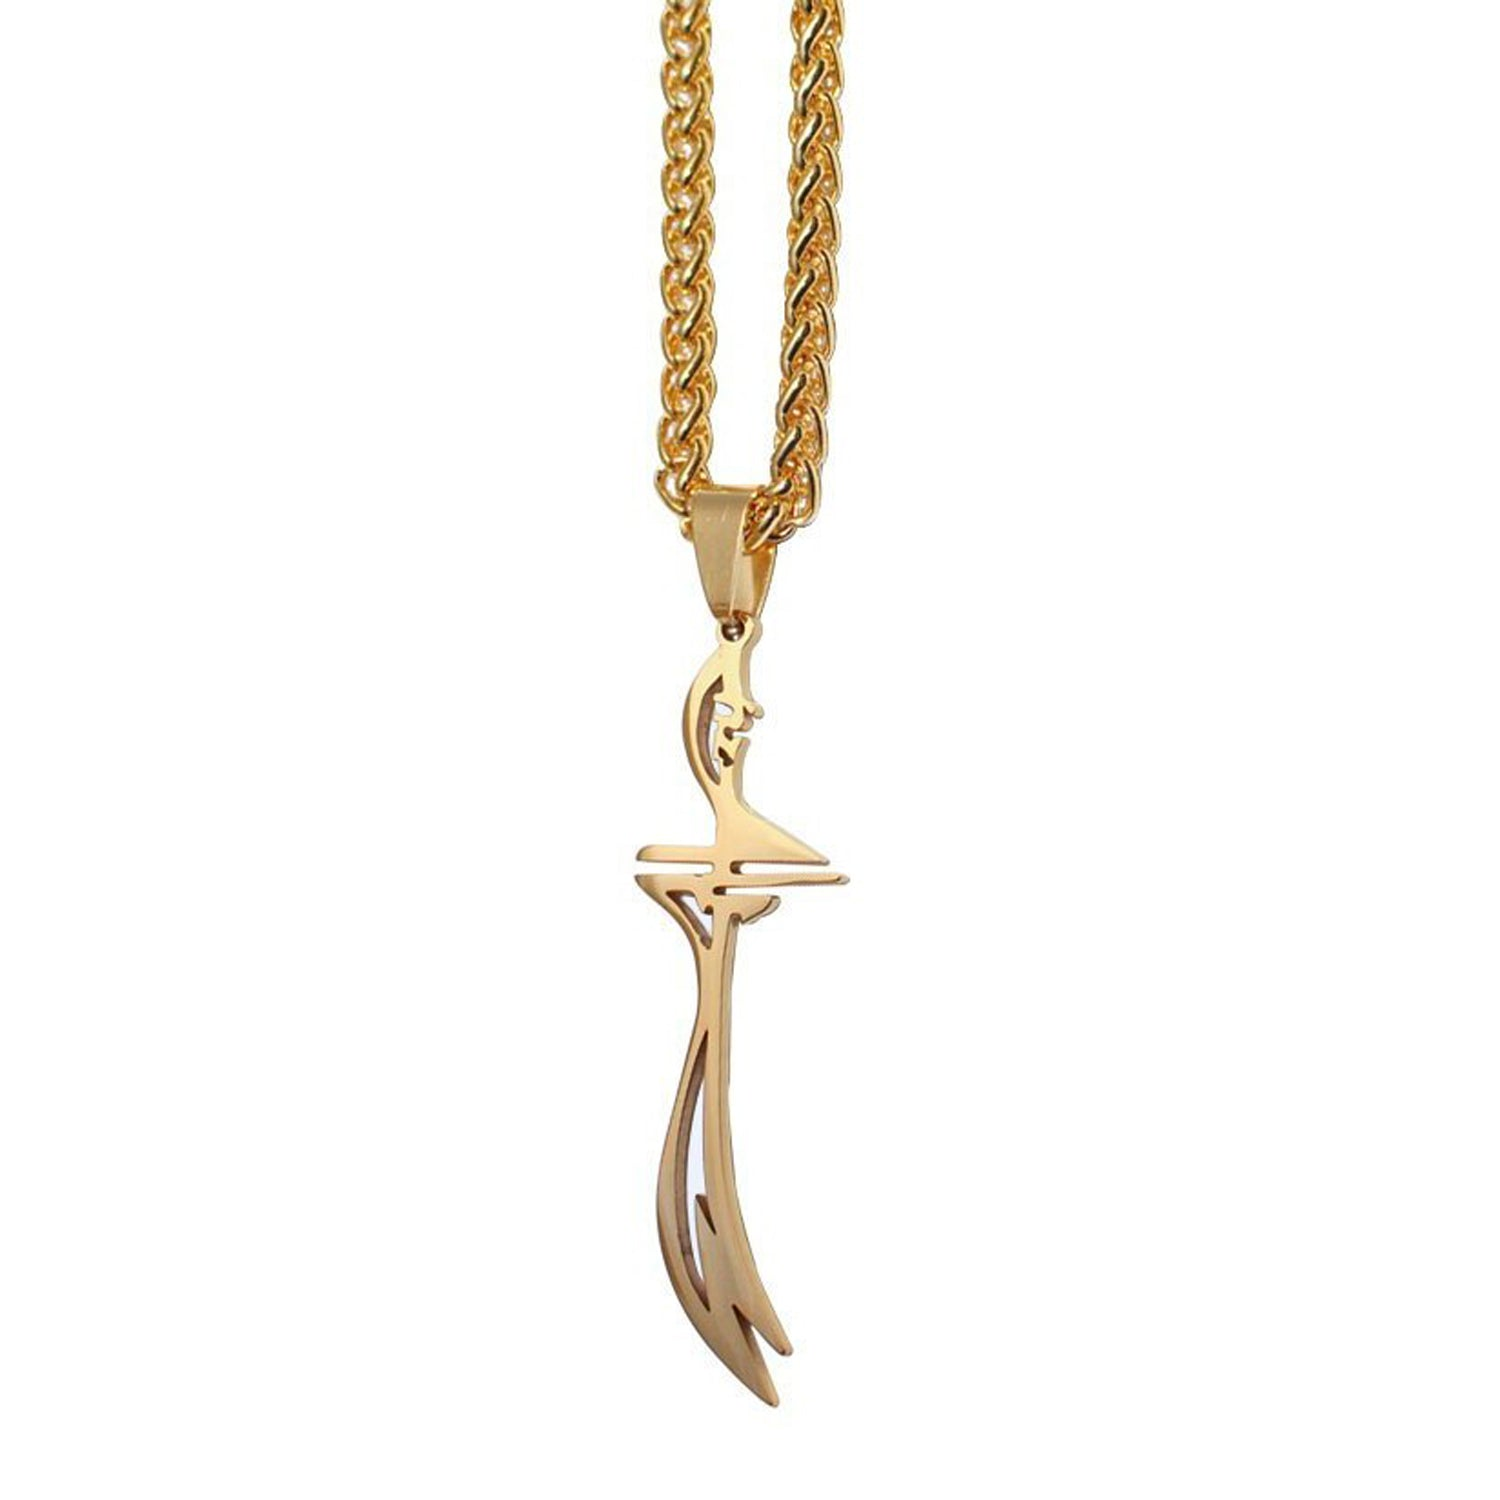 Zulfiqar Necklace Gold/Silver